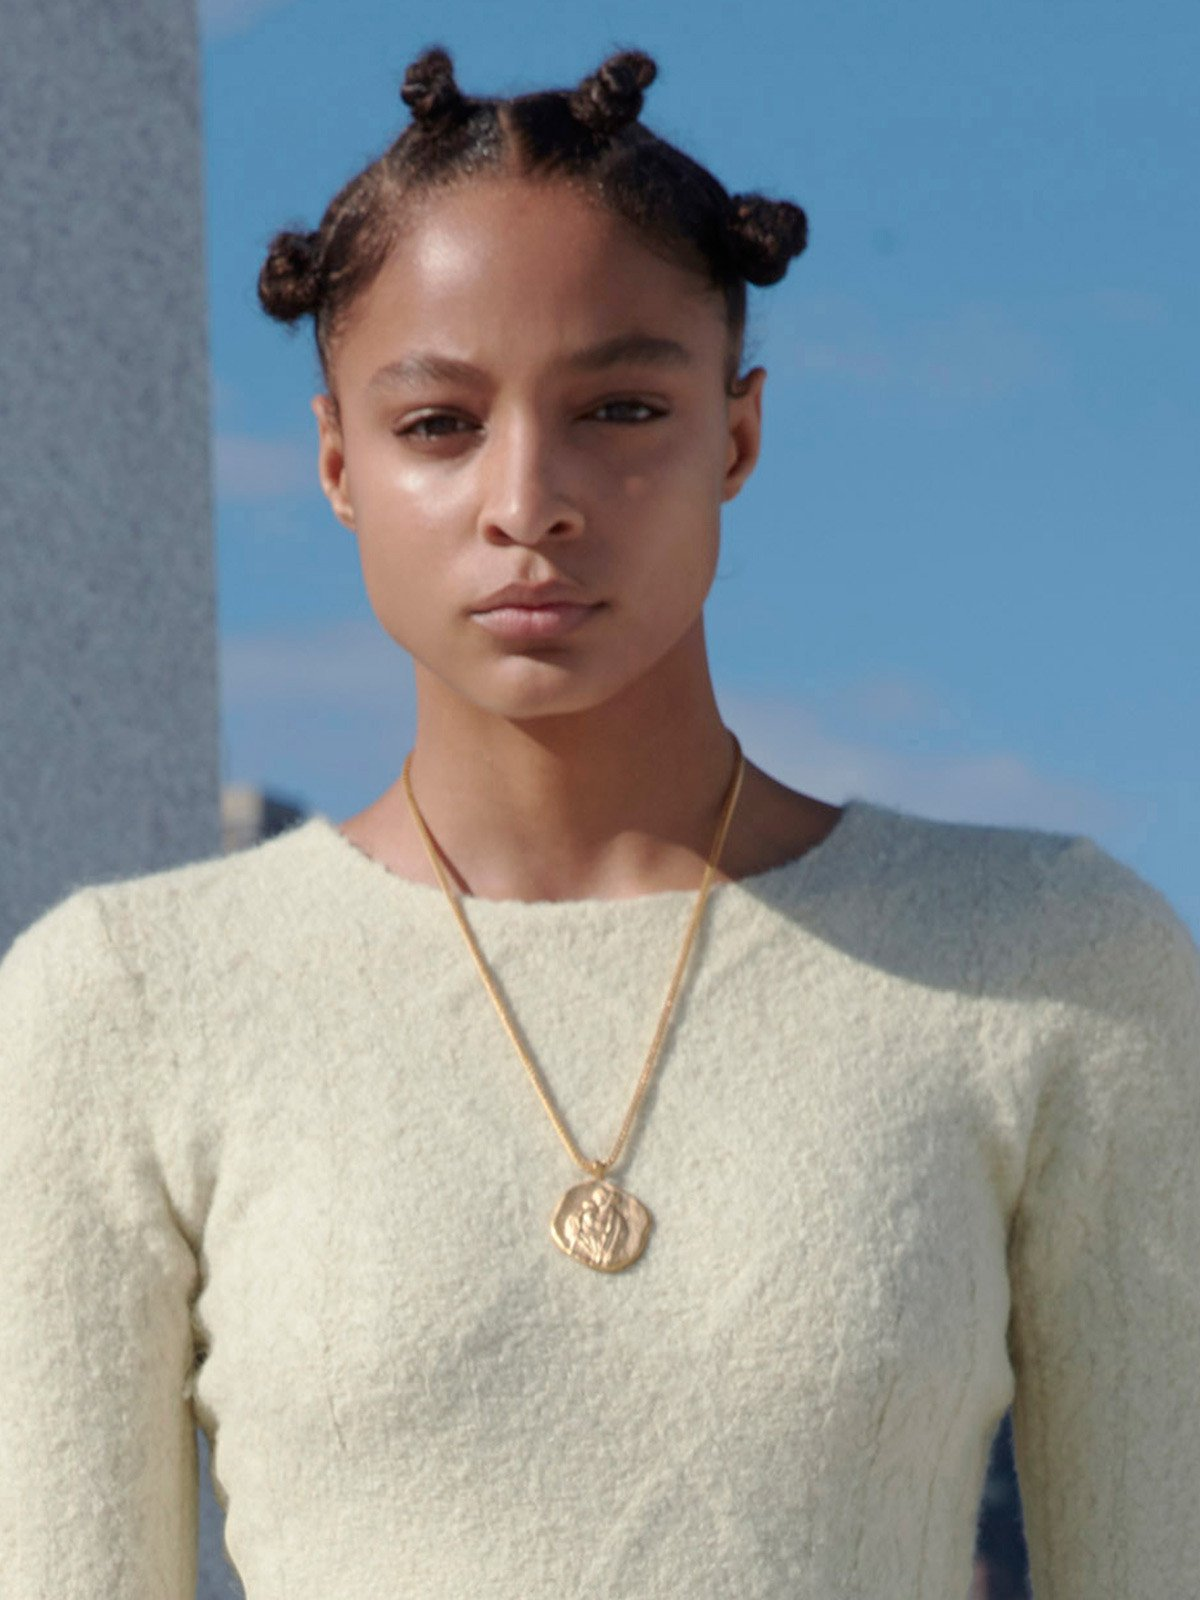 A model wears one of the Renaissance-inspired pieces from Kanye West's new Yeezy jewellery collection, at yeezysupply.com